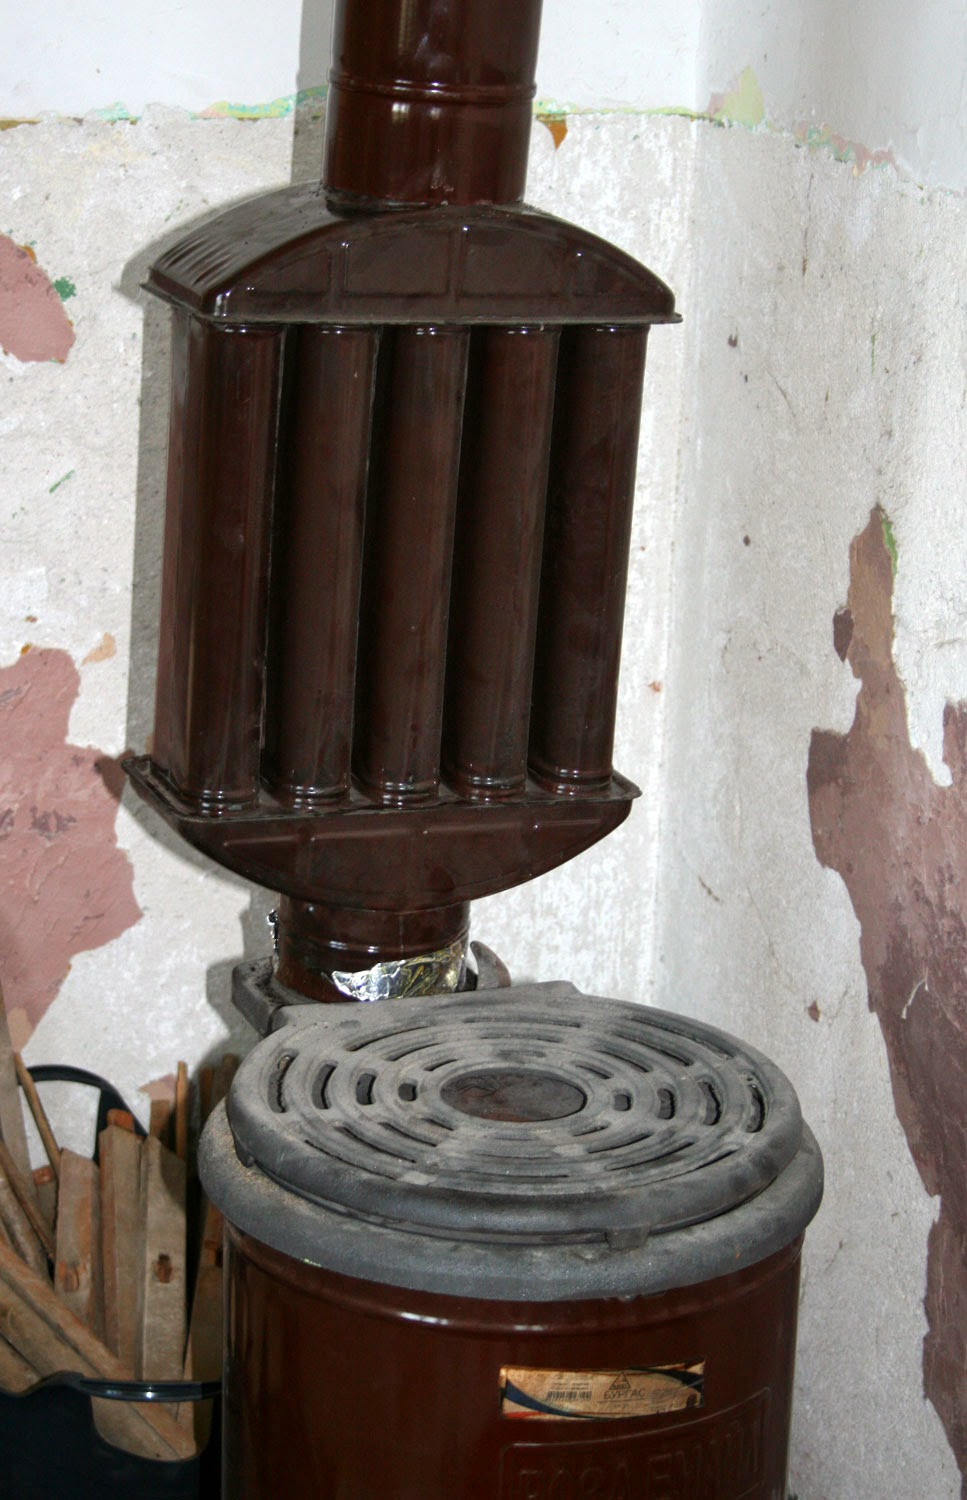 Radiator on Petchka